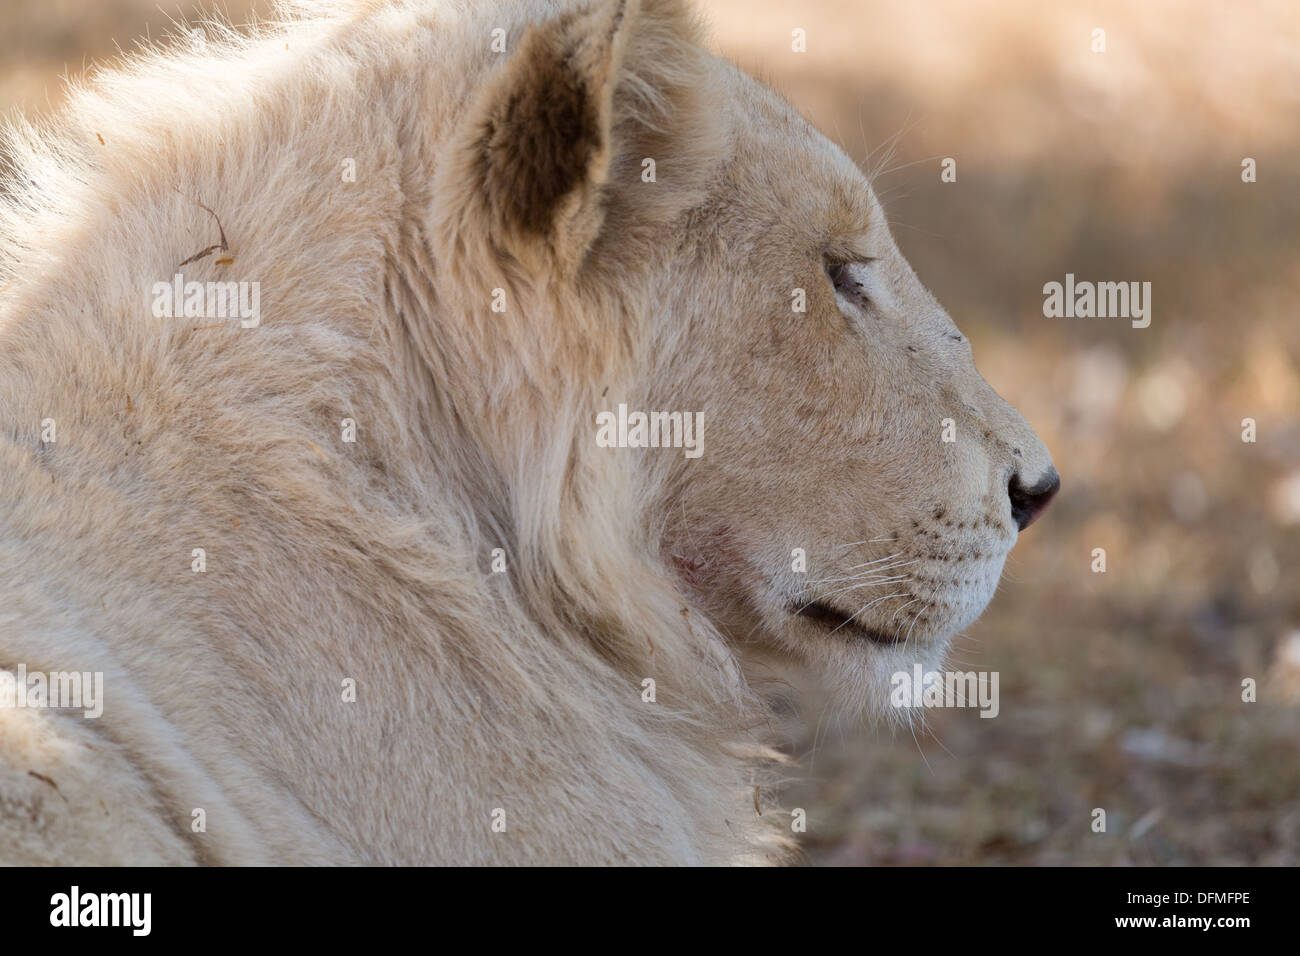 A young white male lion indigenous to South Africa - Stock Image